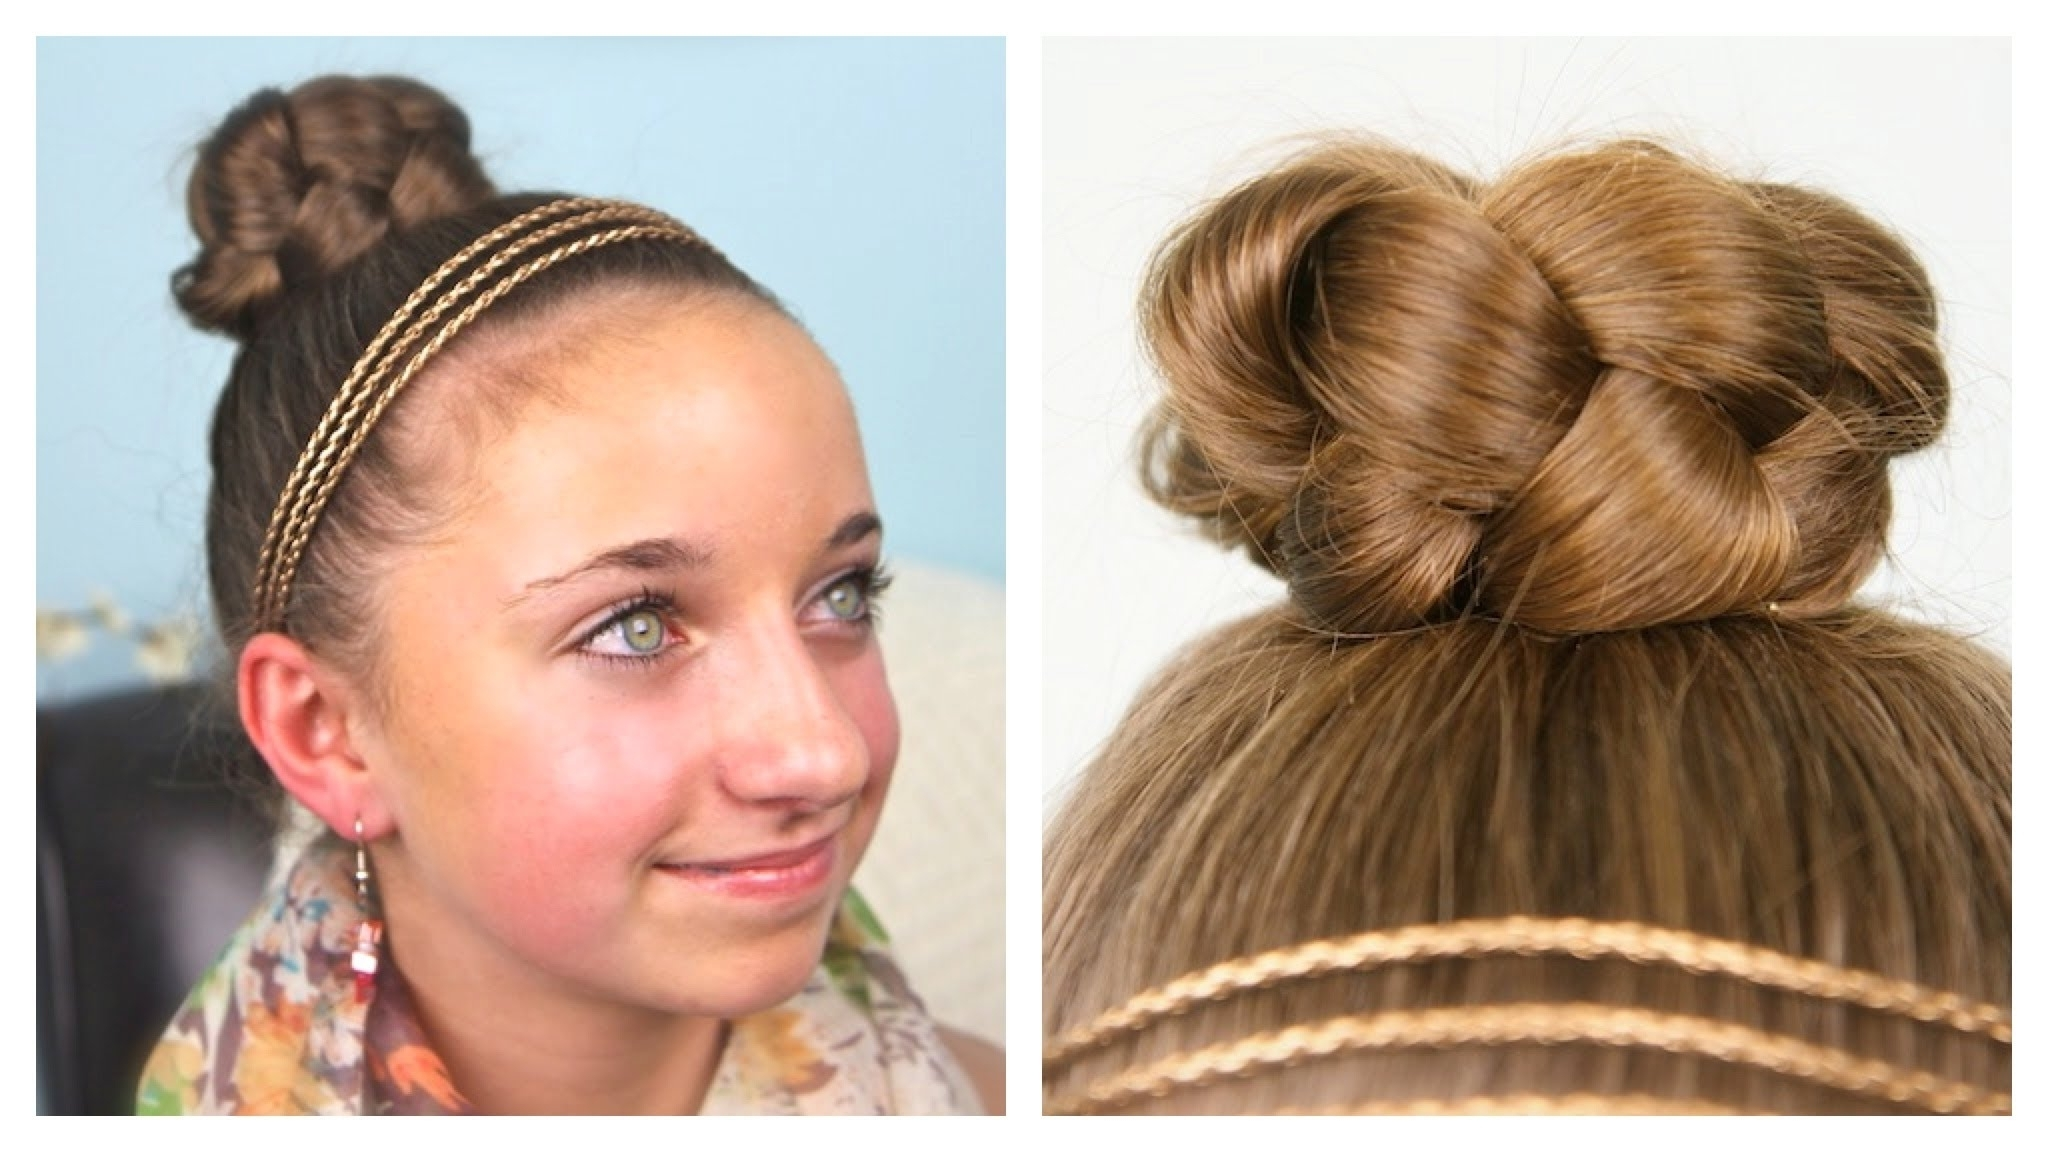 Simple Braided Bun | Updo | Cute Girls Hairstyles – Youtube In Easy Braided Updo Hairstyles For Long Hair (View 15 of 15)